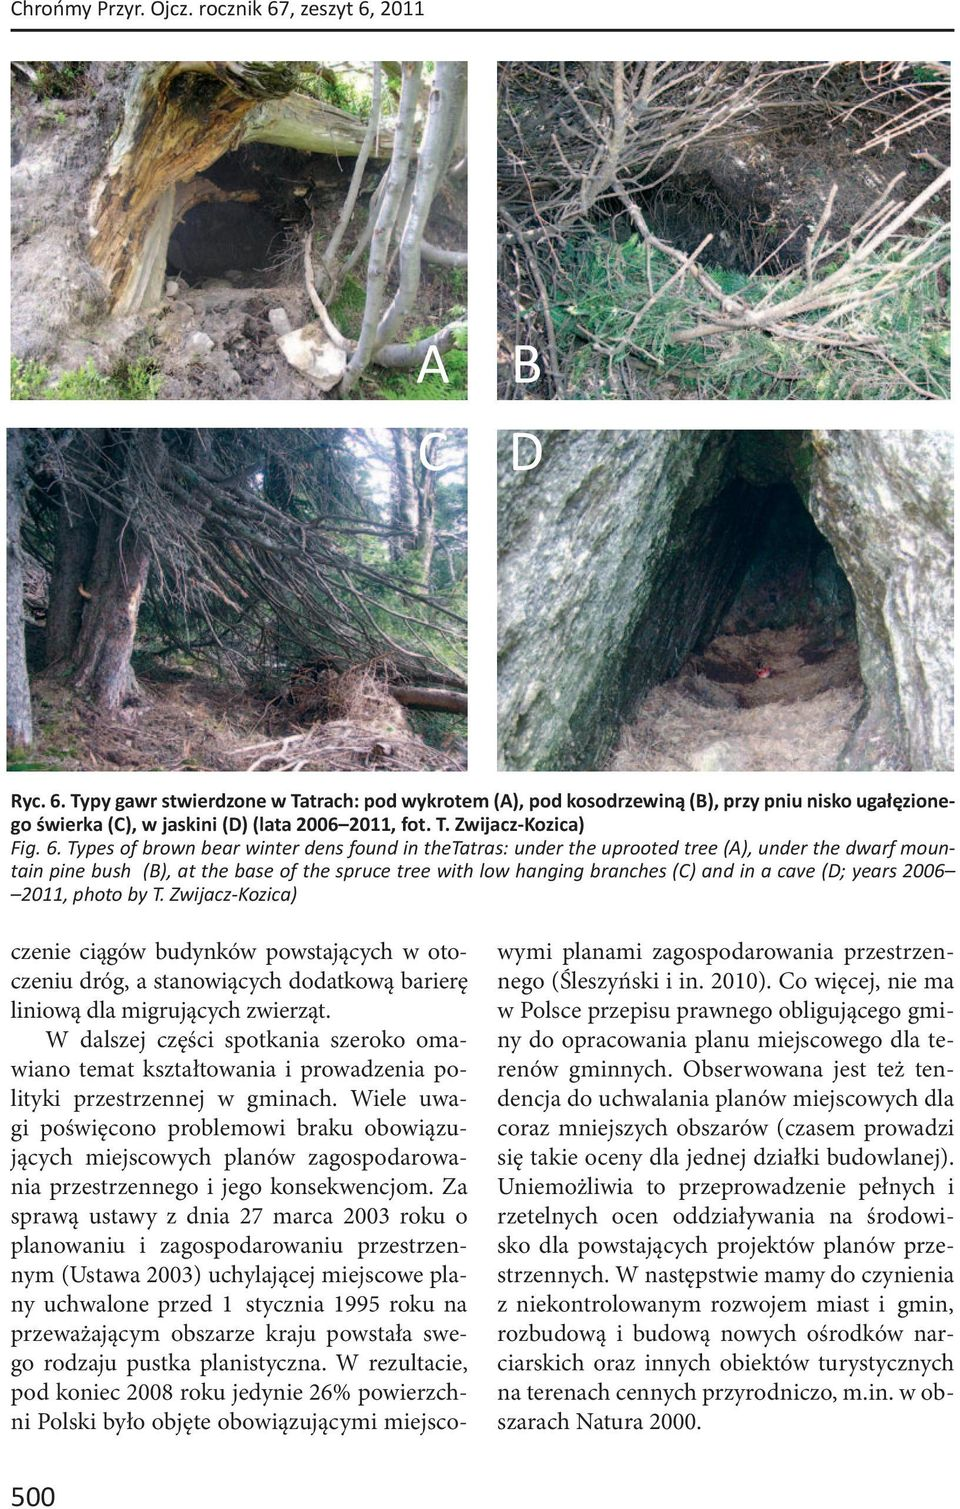 Types of brown bear winter dens found in thetatras: under the uprooted tree (A), under the dwarf mountain pine bush (B), at the base of the spruce tree with low hanging branches (C) and in a cave (D;